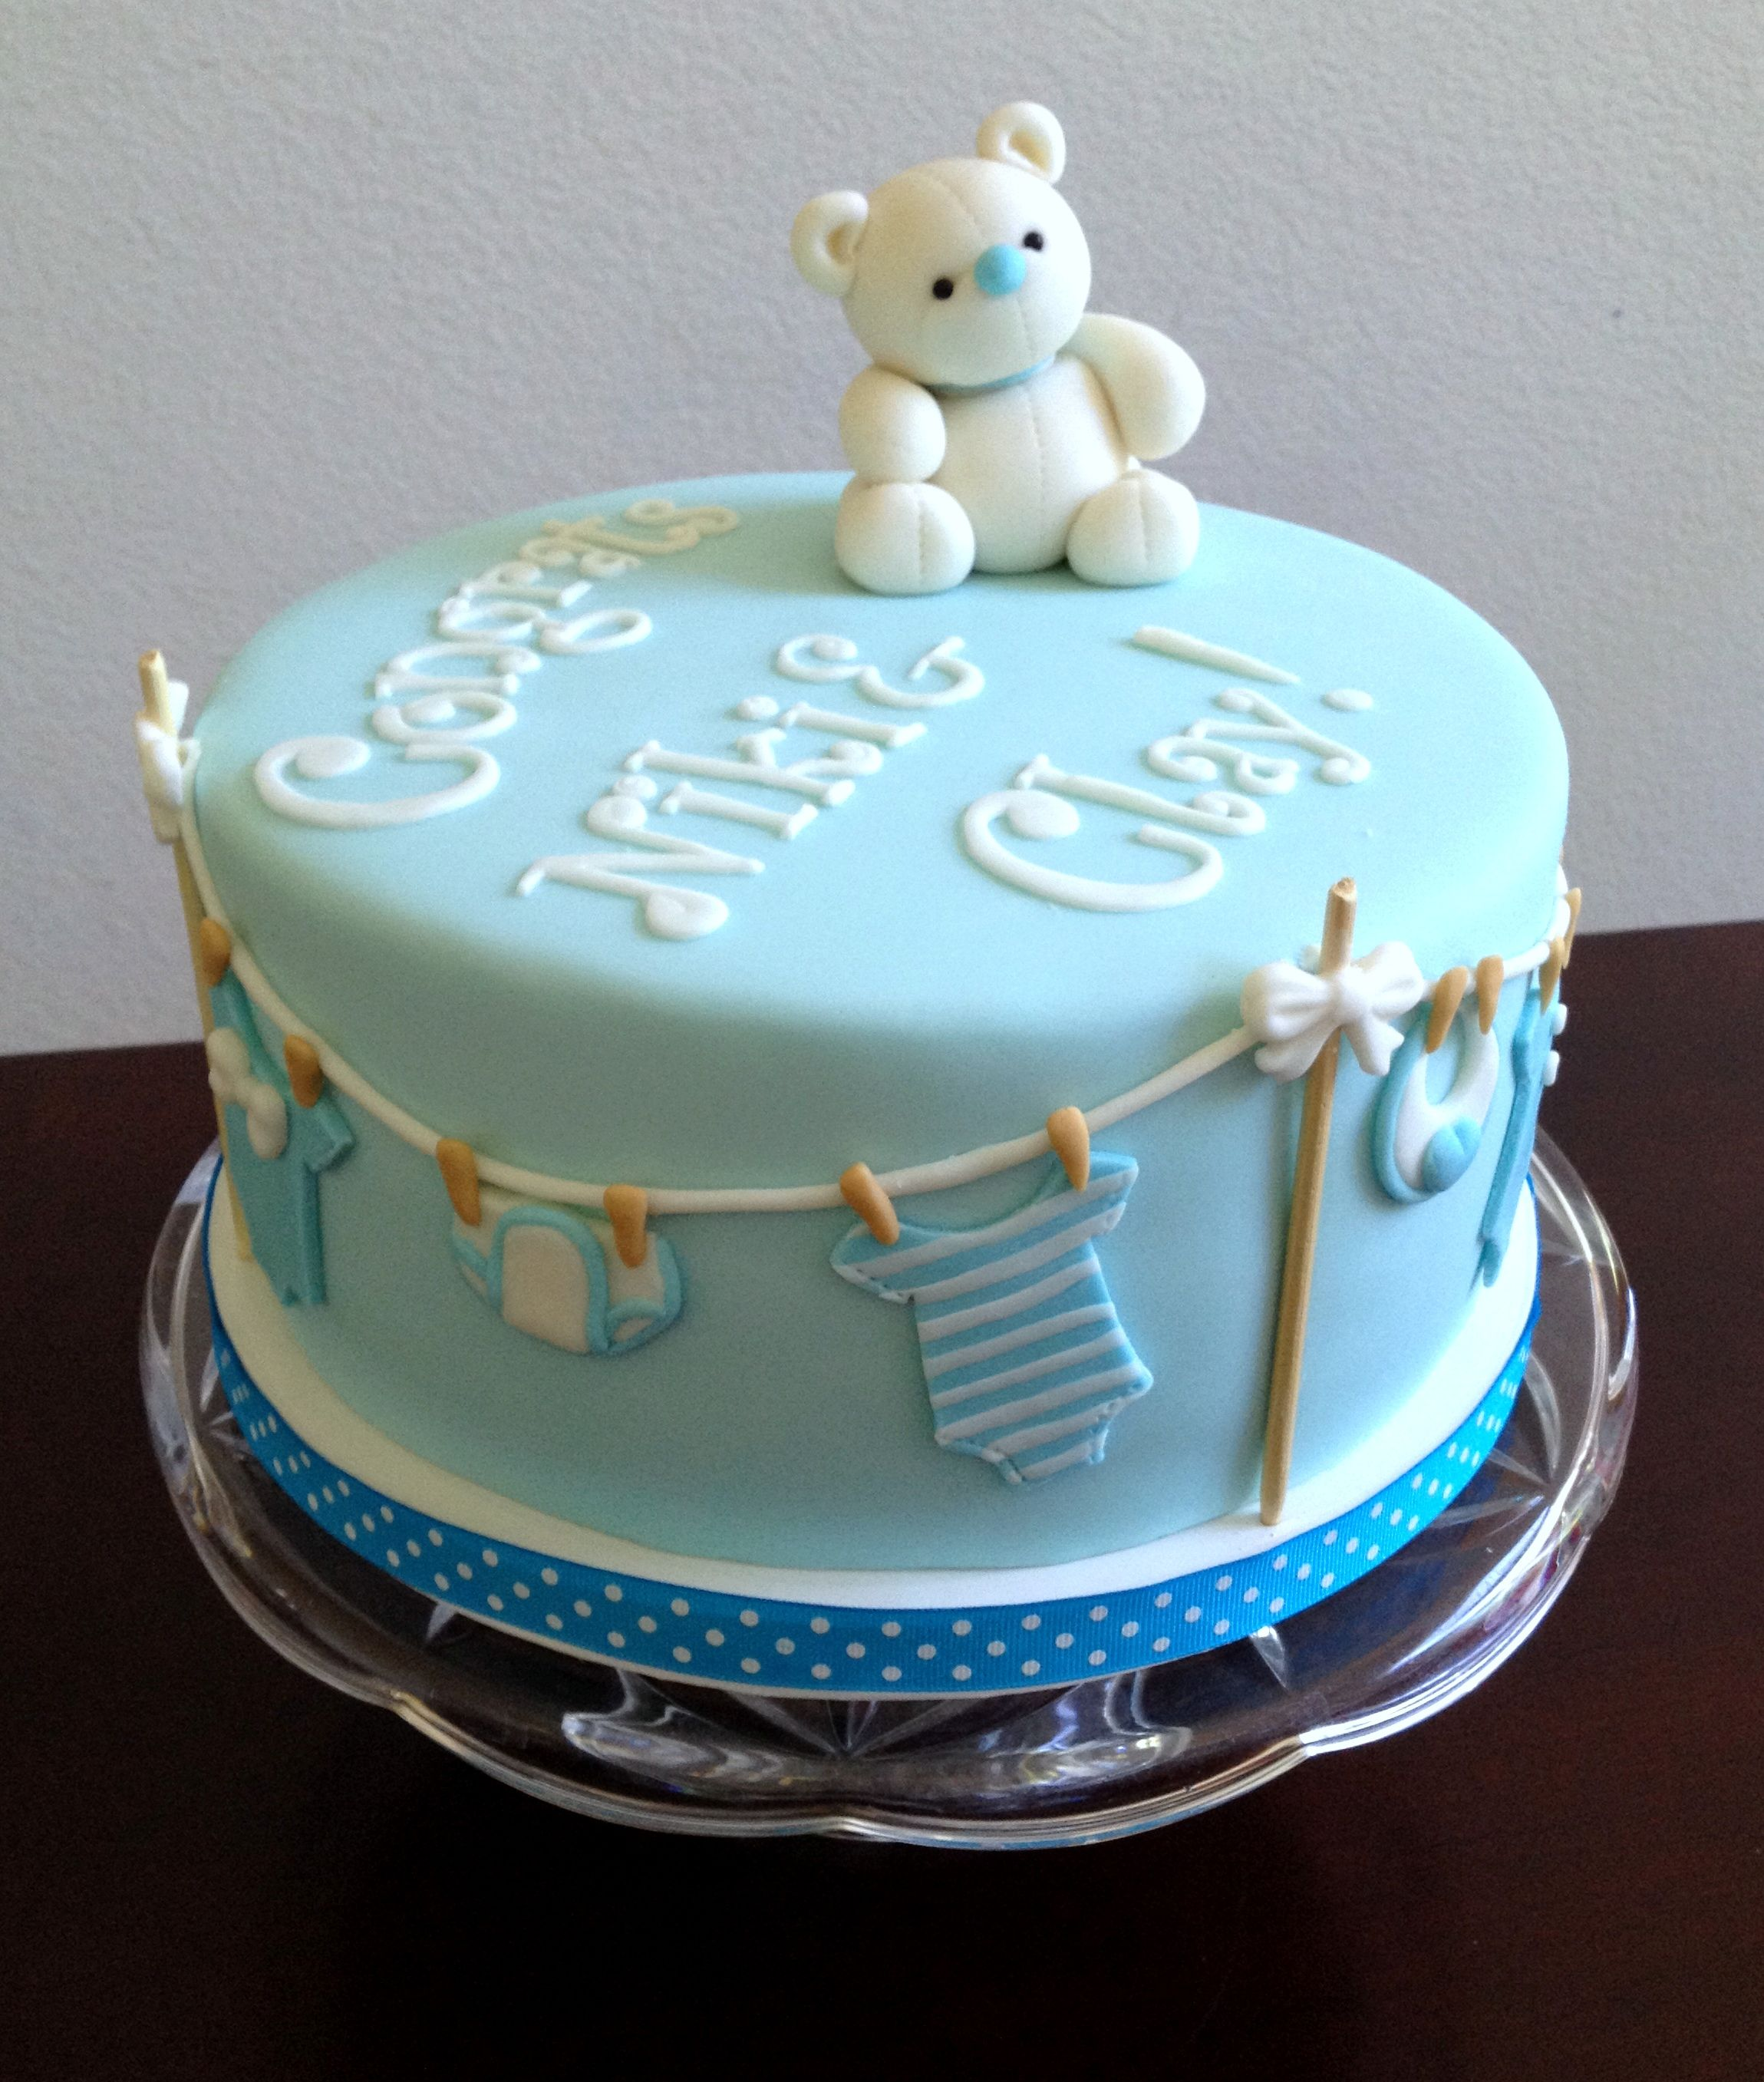 Baby Boy baby shower cake. Skewers for clothe line poles